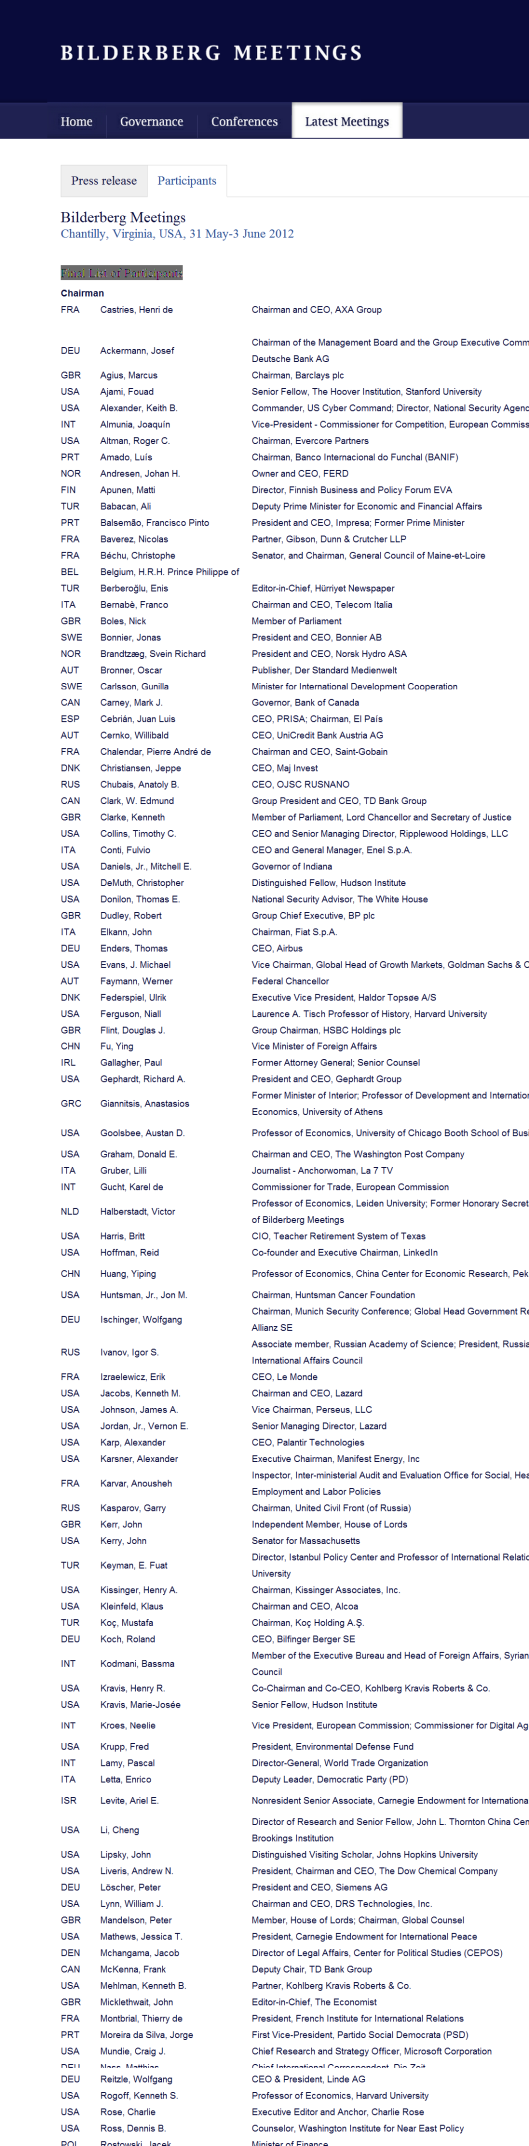 Bilderberg 2012 Final List of Participants